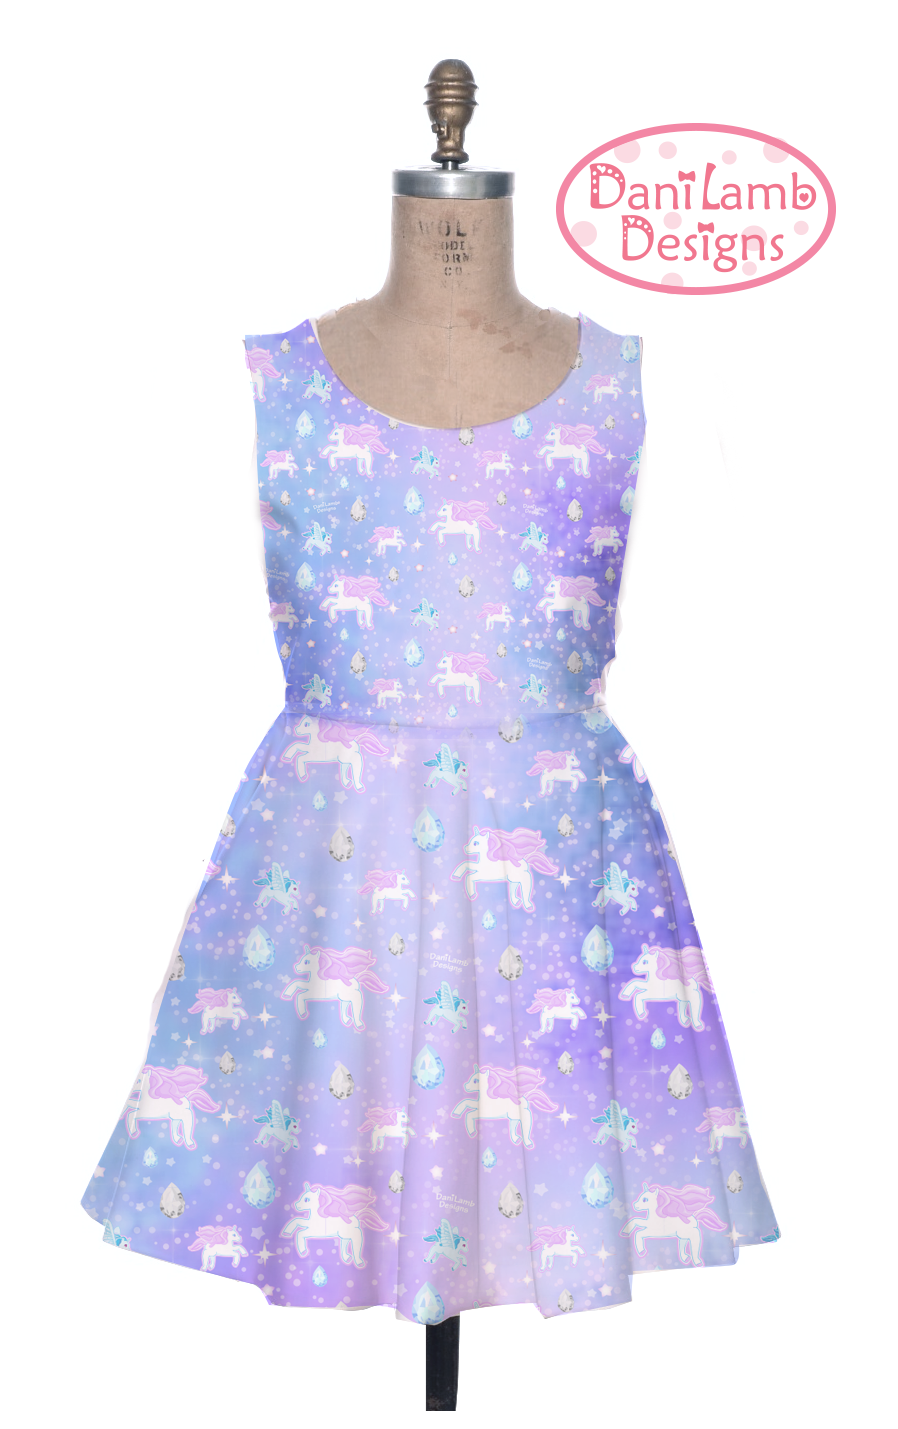 2becf8c1400 Unicorn Dress Pegasus Pony Fairy Kei Pastel Galaxy Dress Stars Universe  Size XS Through 3XL - Thumbnail 2